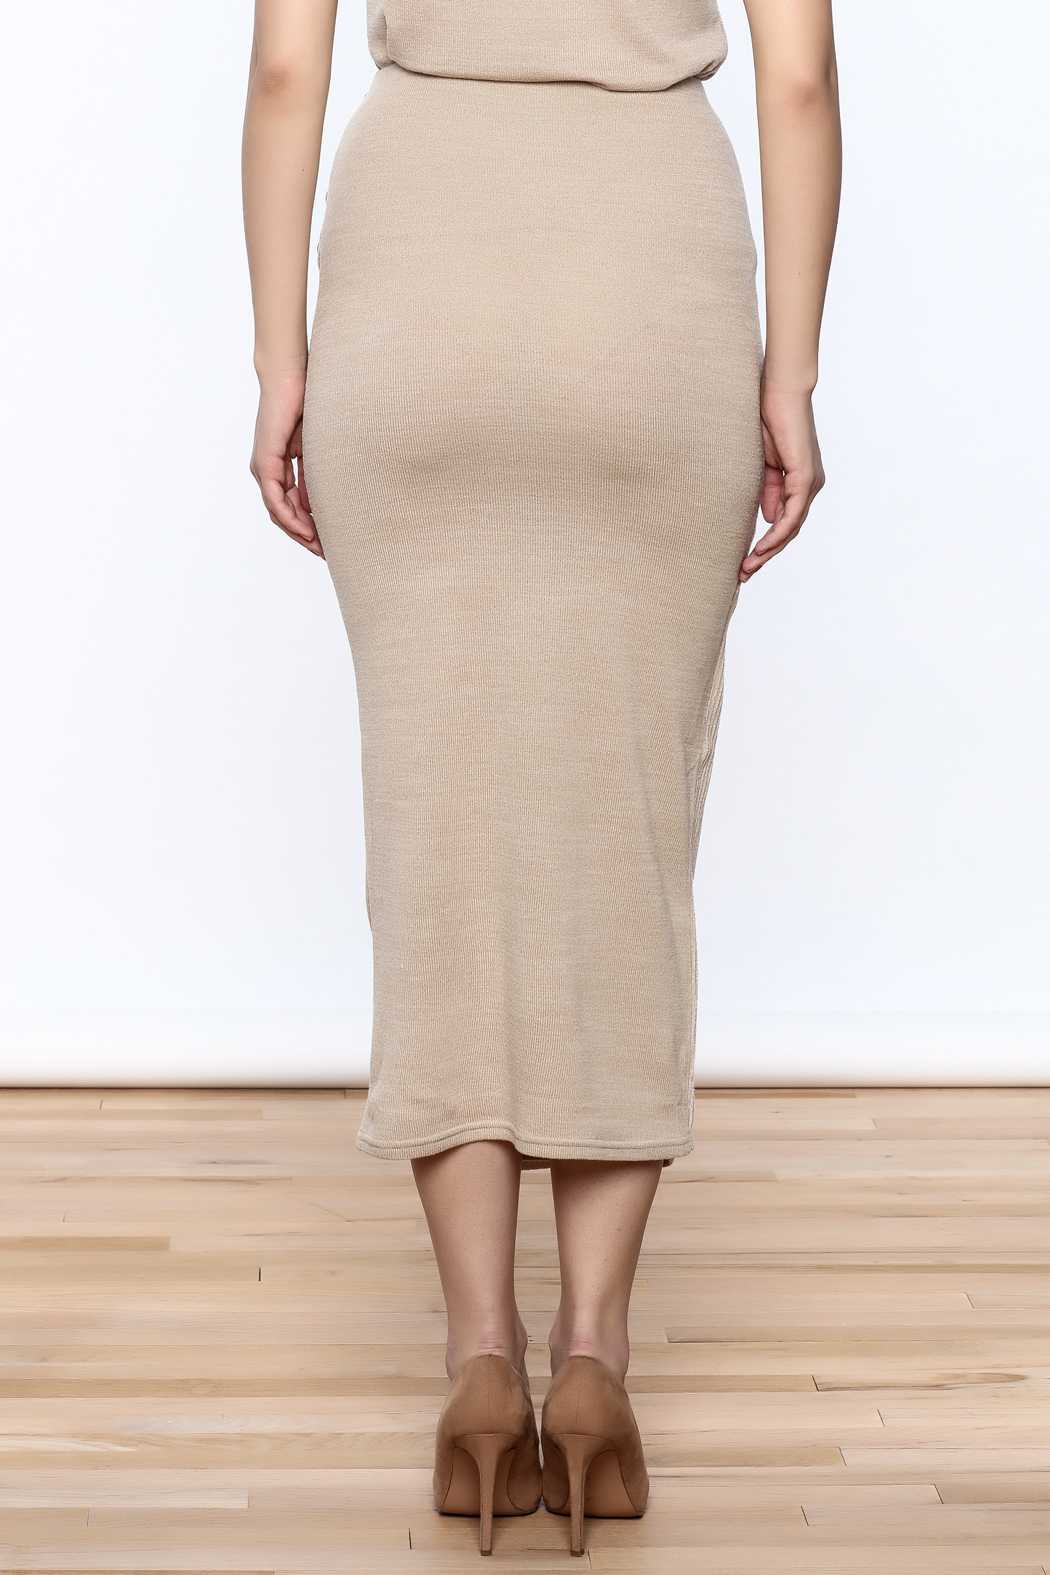 Moon River Beige Knit Midi Skirt - Back Cropped Image